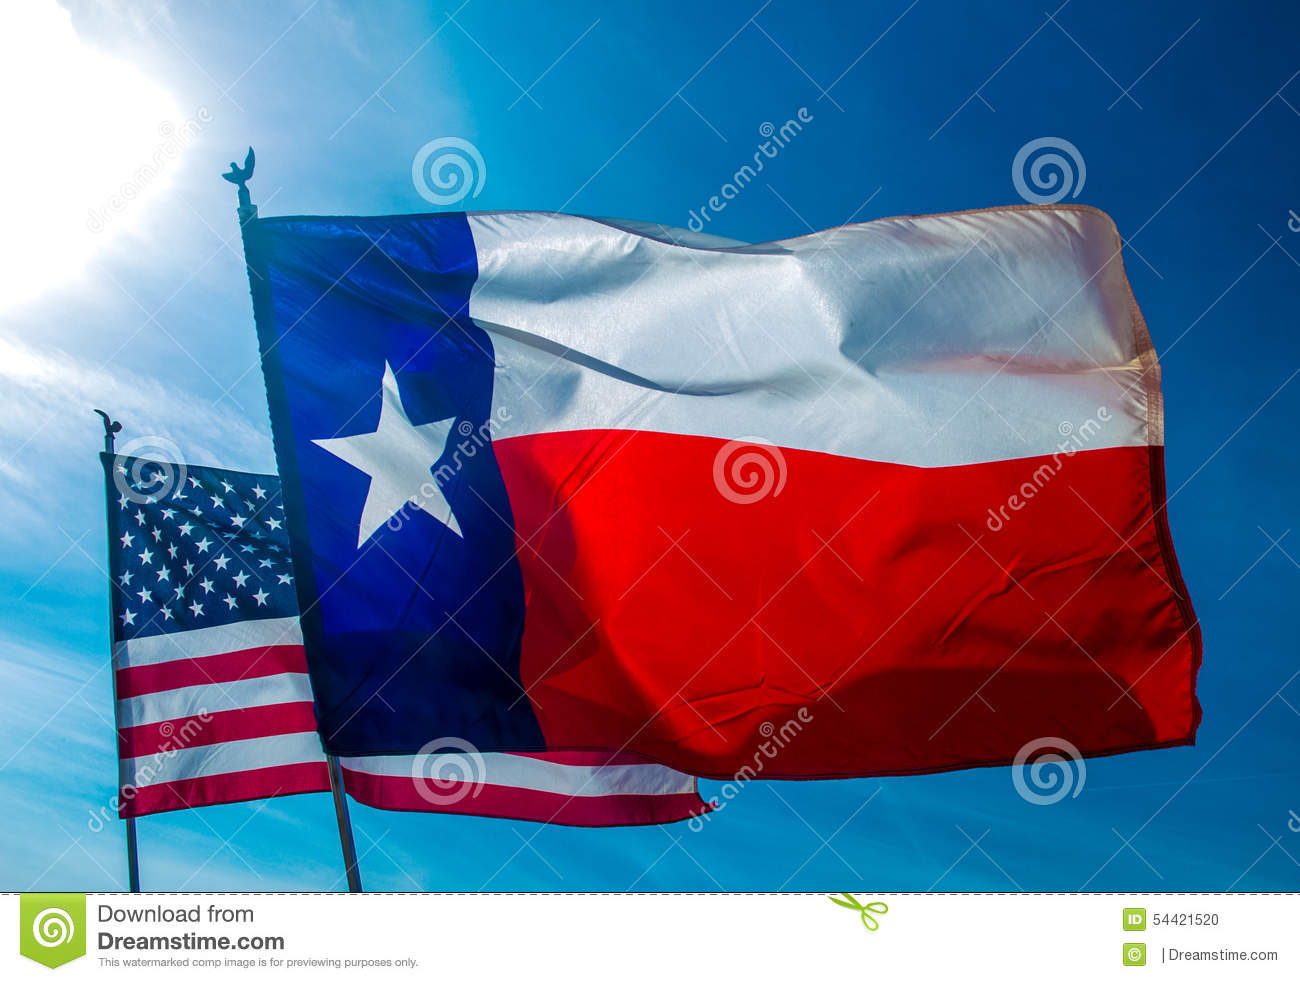 Texas Flag backed by American Flag